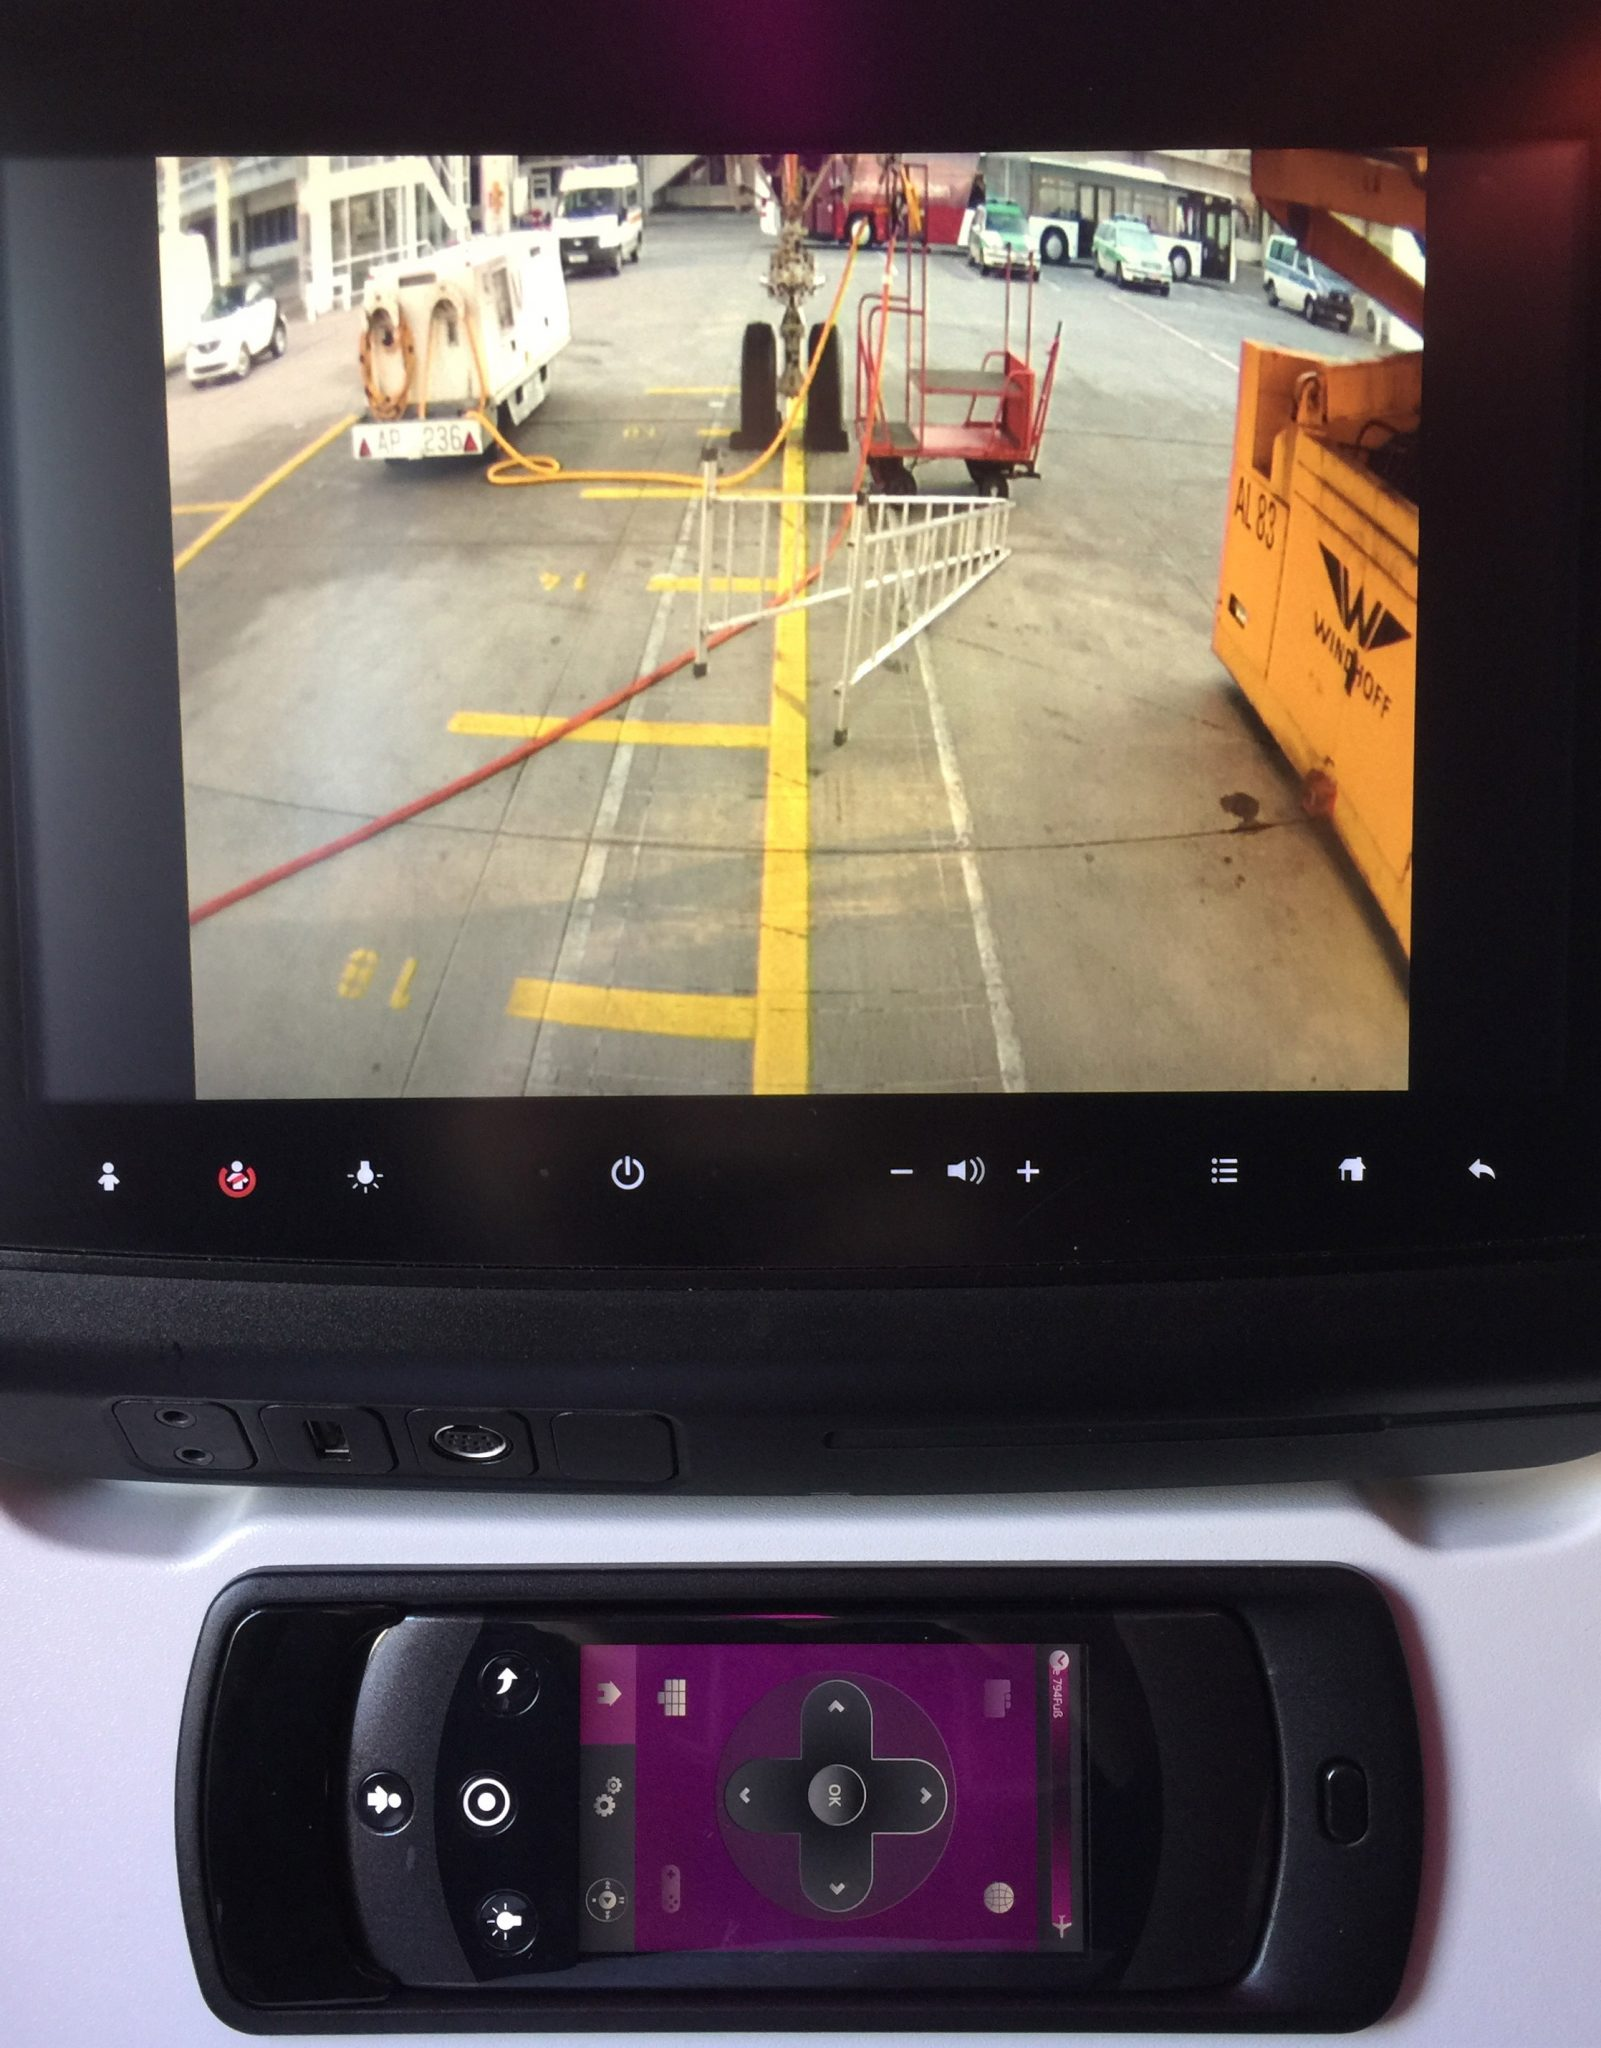 Entertainment Airbus A350 Qatar Airways